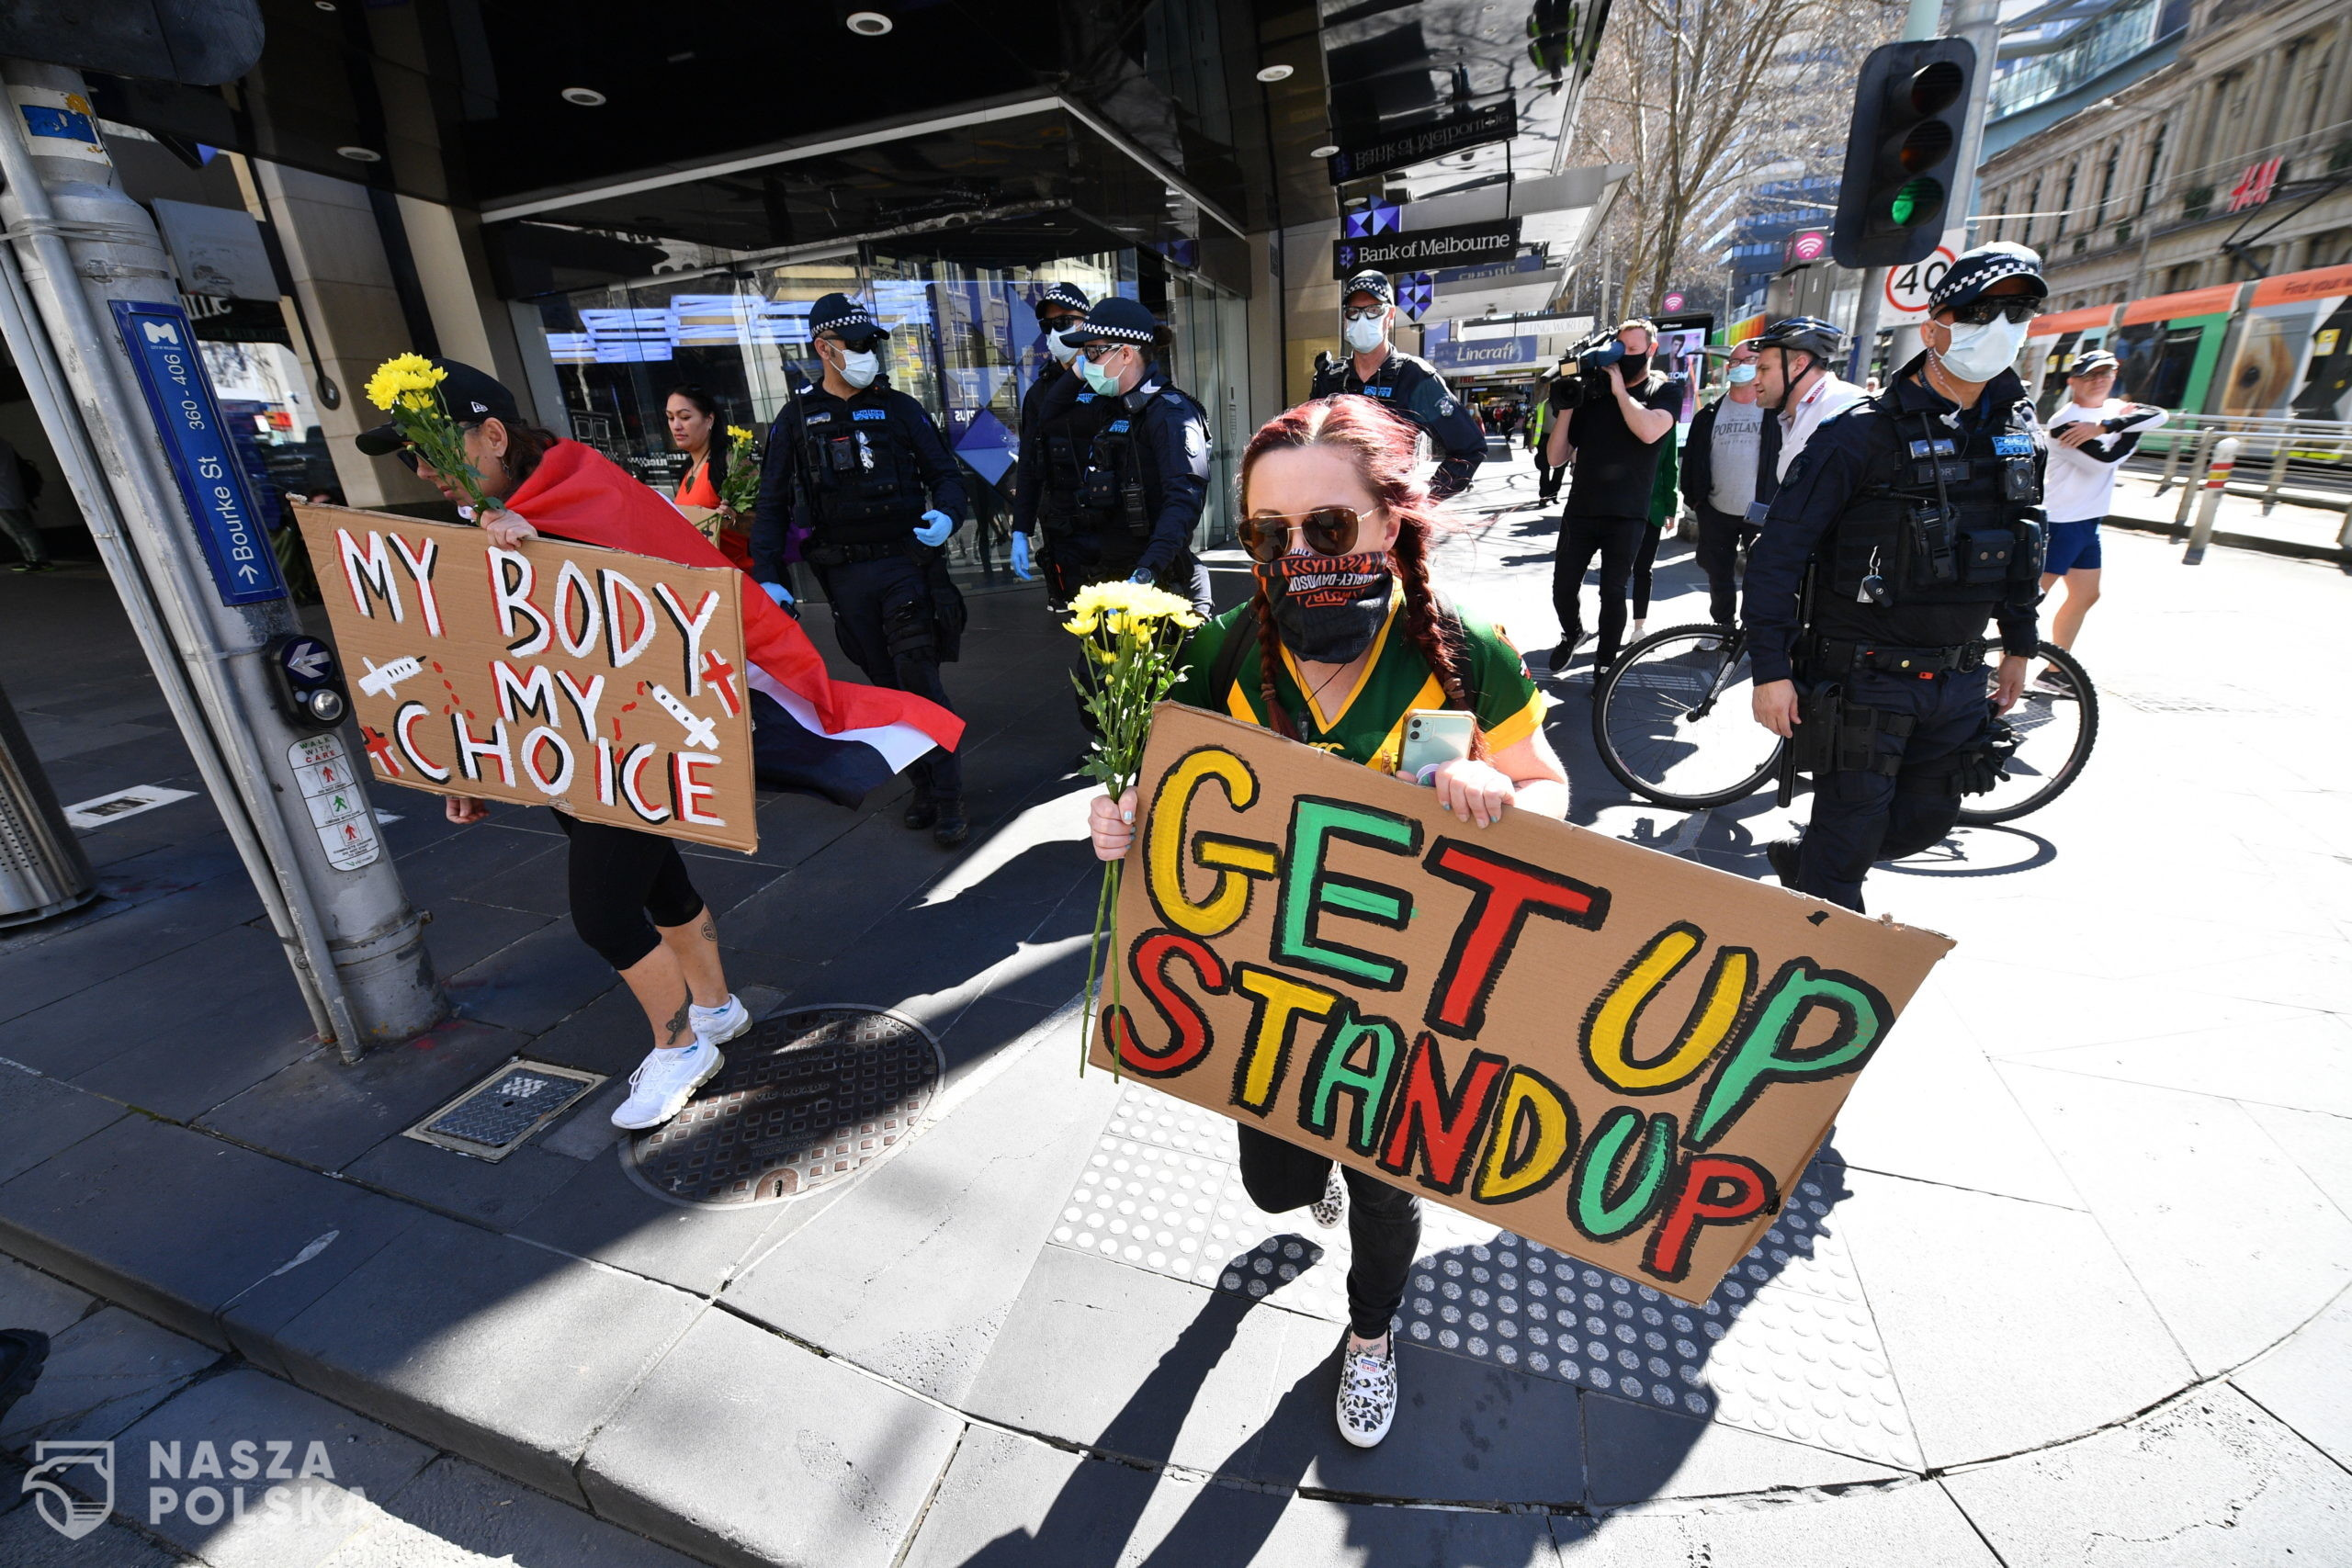 epa09422750 Protesters are seen wth placards during an anti-lockdown protest in the central business district of Melbourne, Australia, 21 August 2021.  EPA/JAMES ROSS AUSTRALIA AND NEW ZEALAND OUT  Dostawca: PAP/EPA.